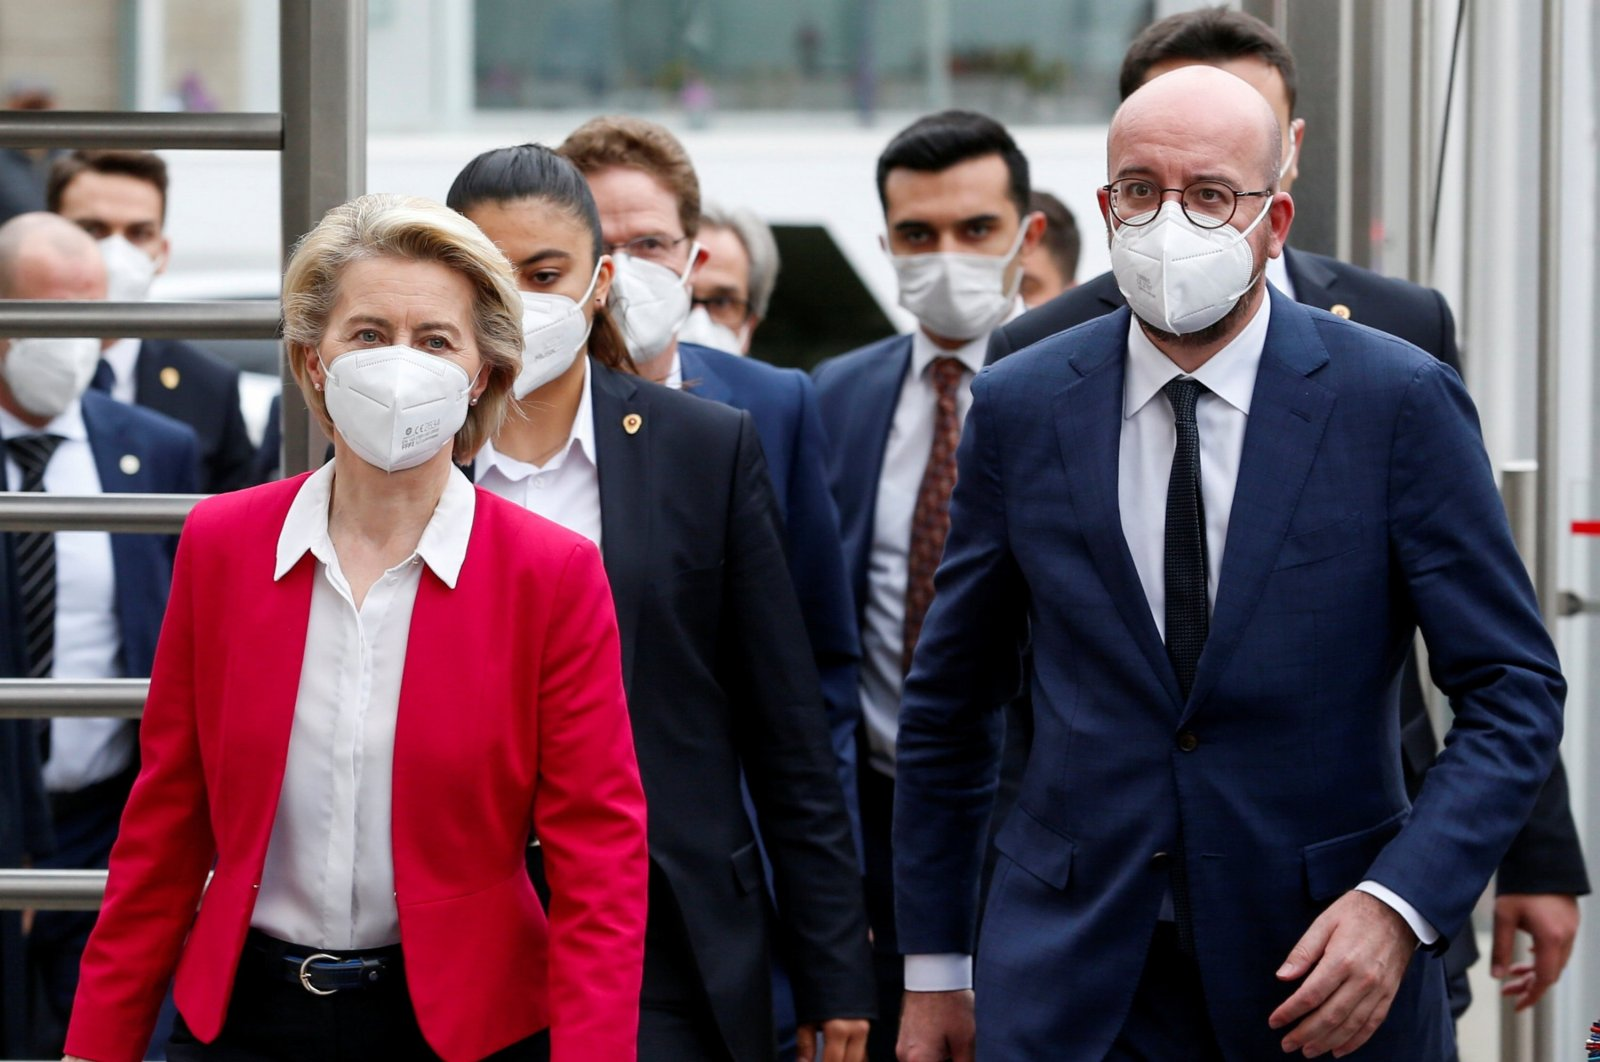 European Commission President Ursula von der Leyen (L) and European Council President Charles Michel (R) arrive at a news conference following their meeting with President Recep Tayyip Erdoğan in Ankara, Turkey, April 6, 2021. (Reuters Photo)